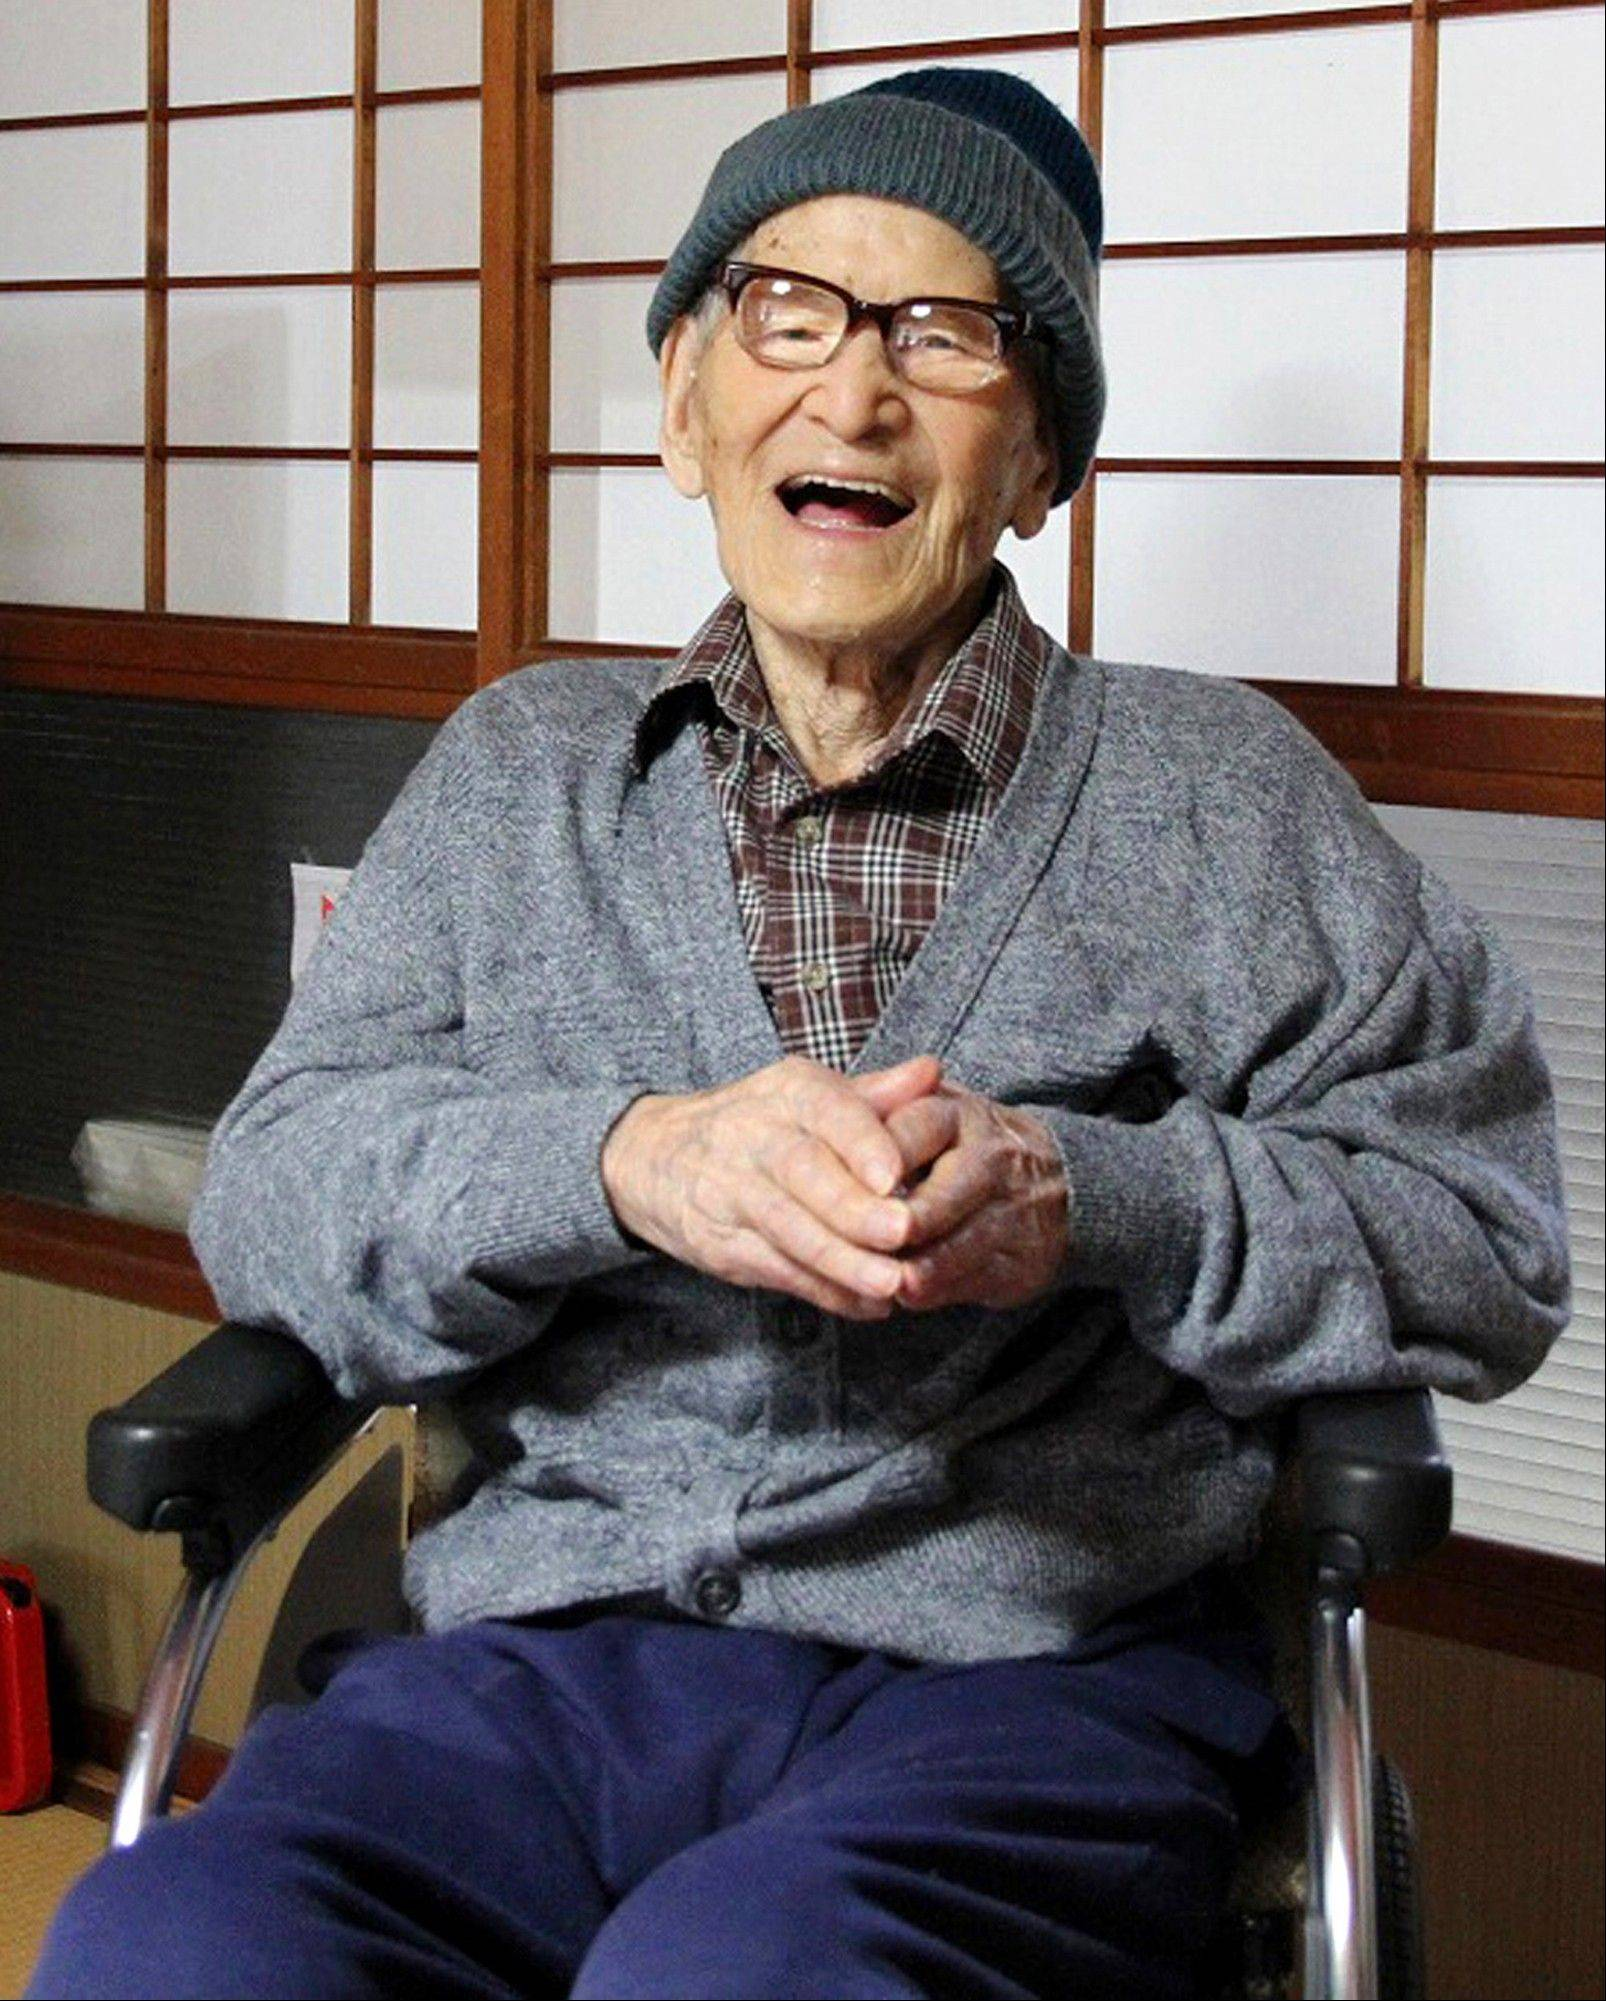 Jiroemon Kimura smiles after he was presented with the certificate of the world's oldest living man from Guinness World Records.